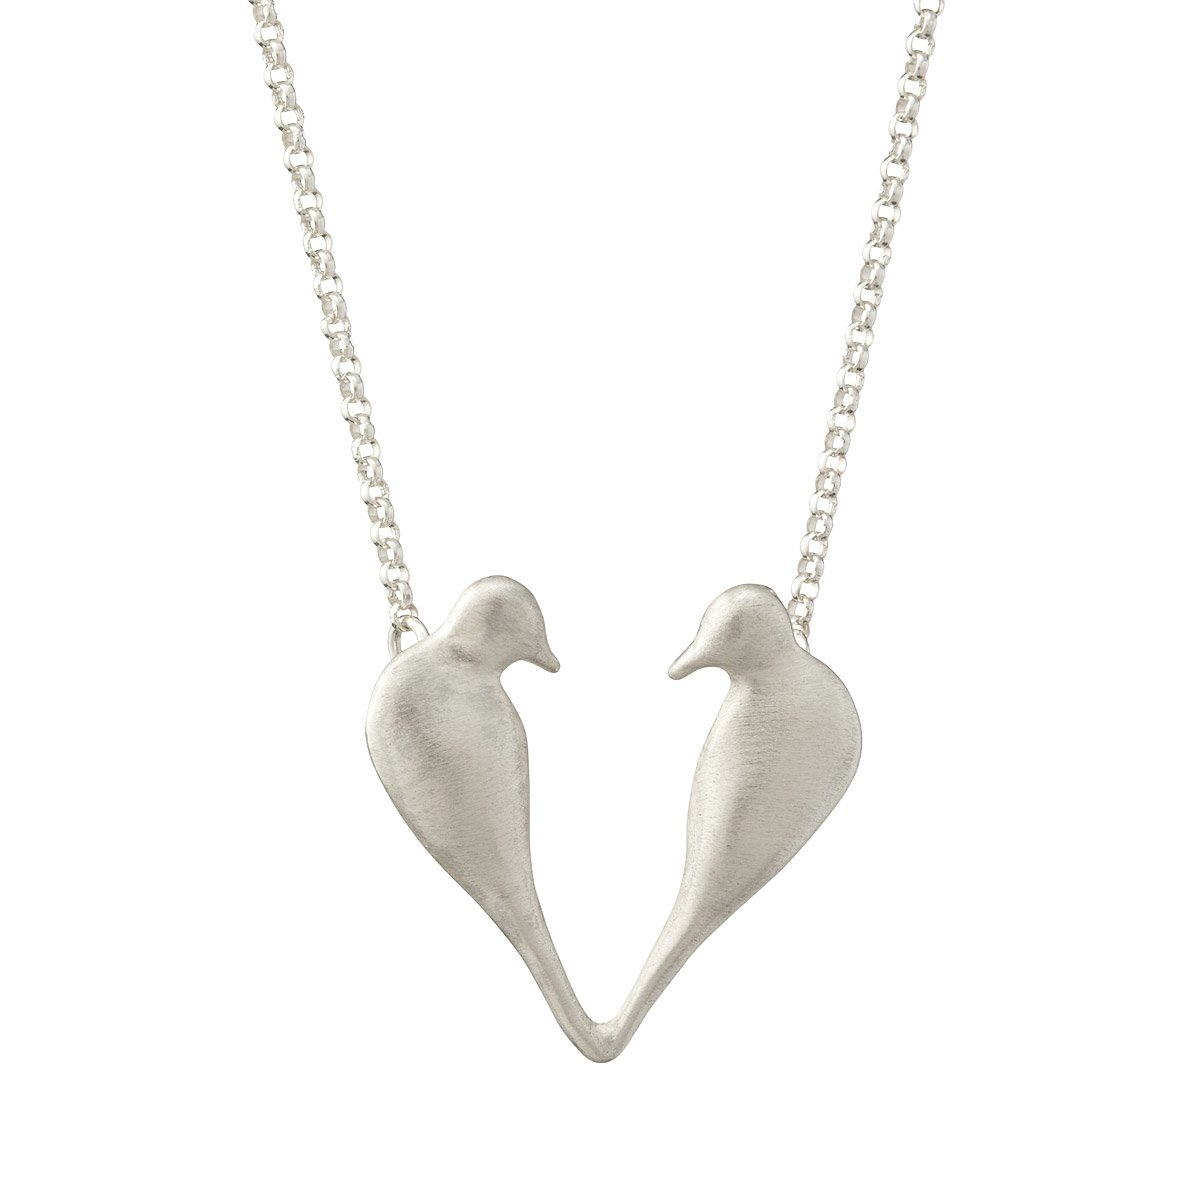 bird pendant love necklaces collections apriljuly necklace